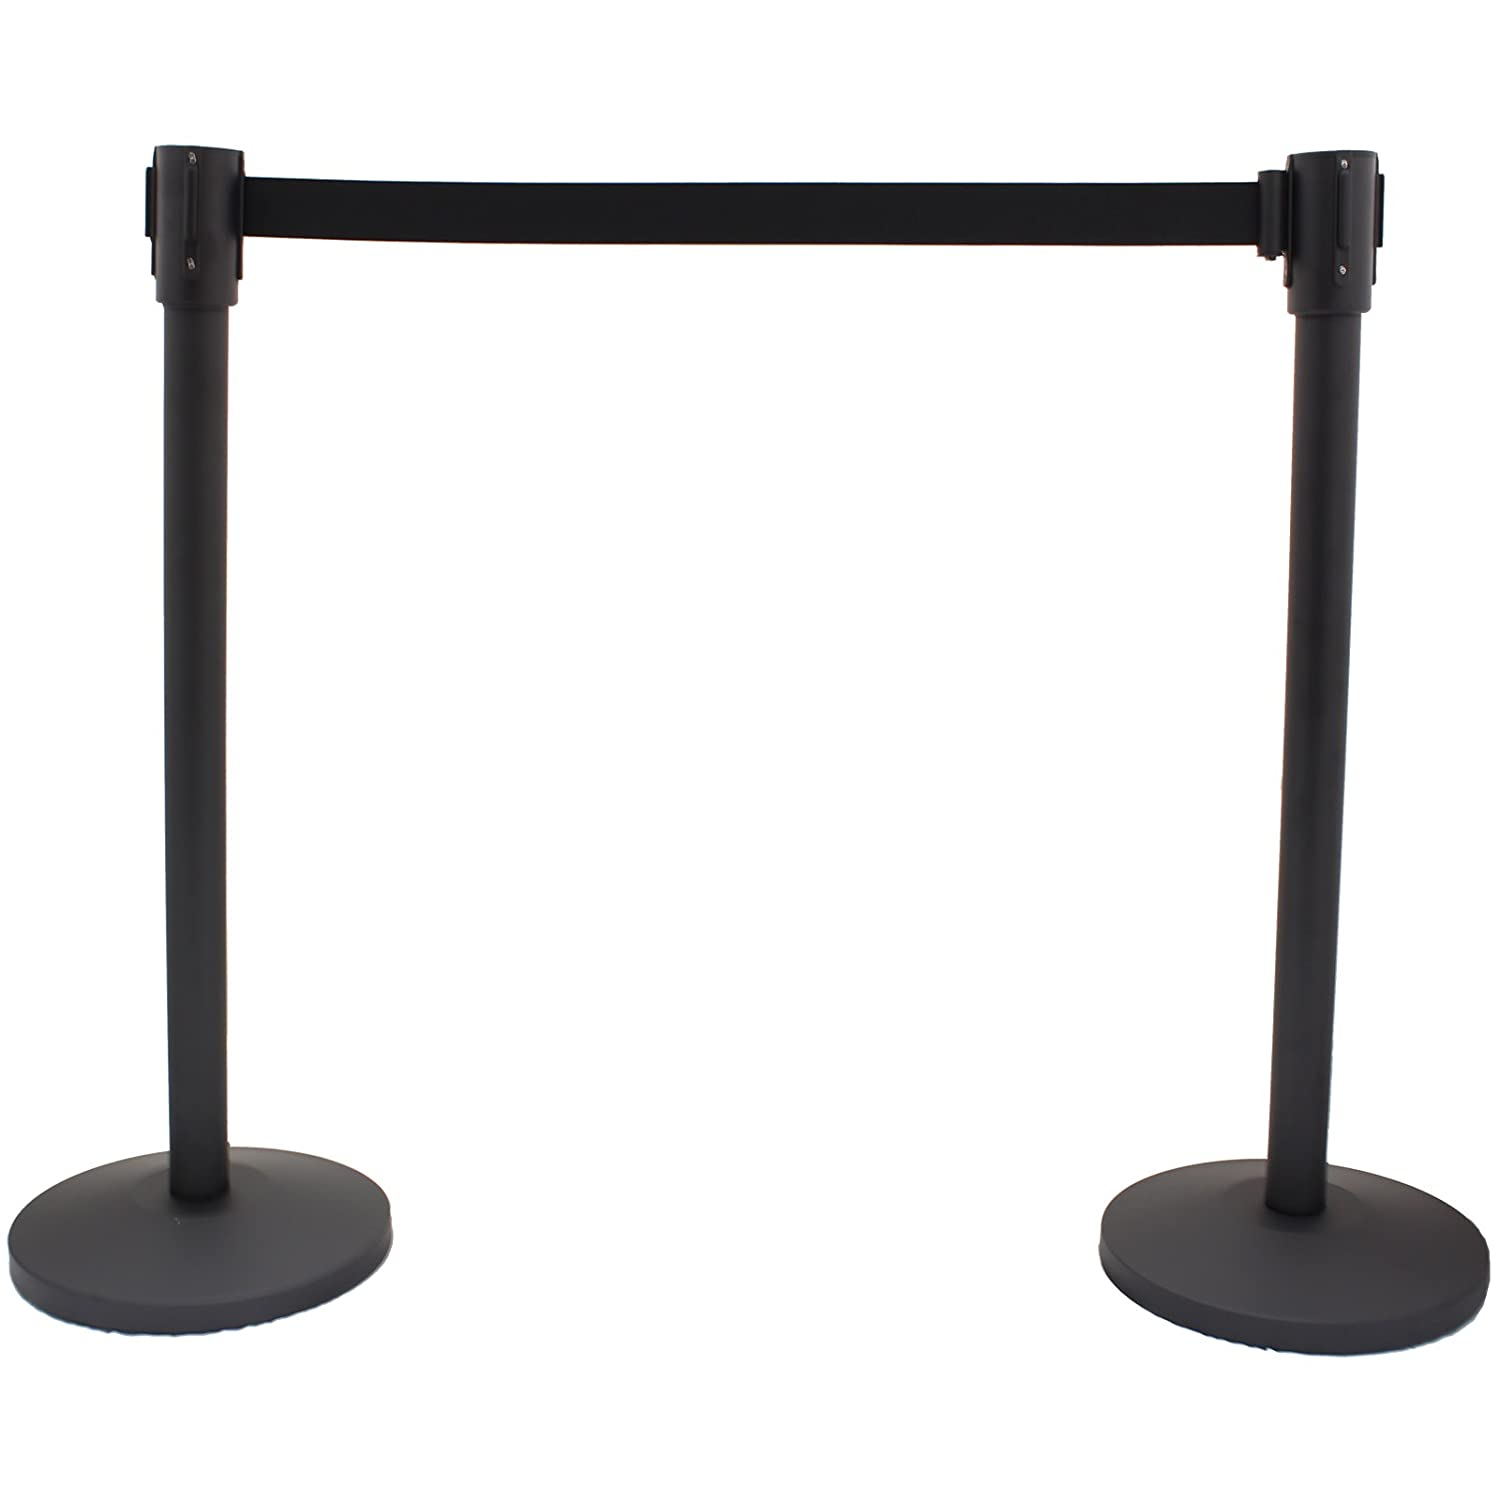 Pair Of Black Crowd Control Safety/Security Posts with Adjustable Belt Hardcastle